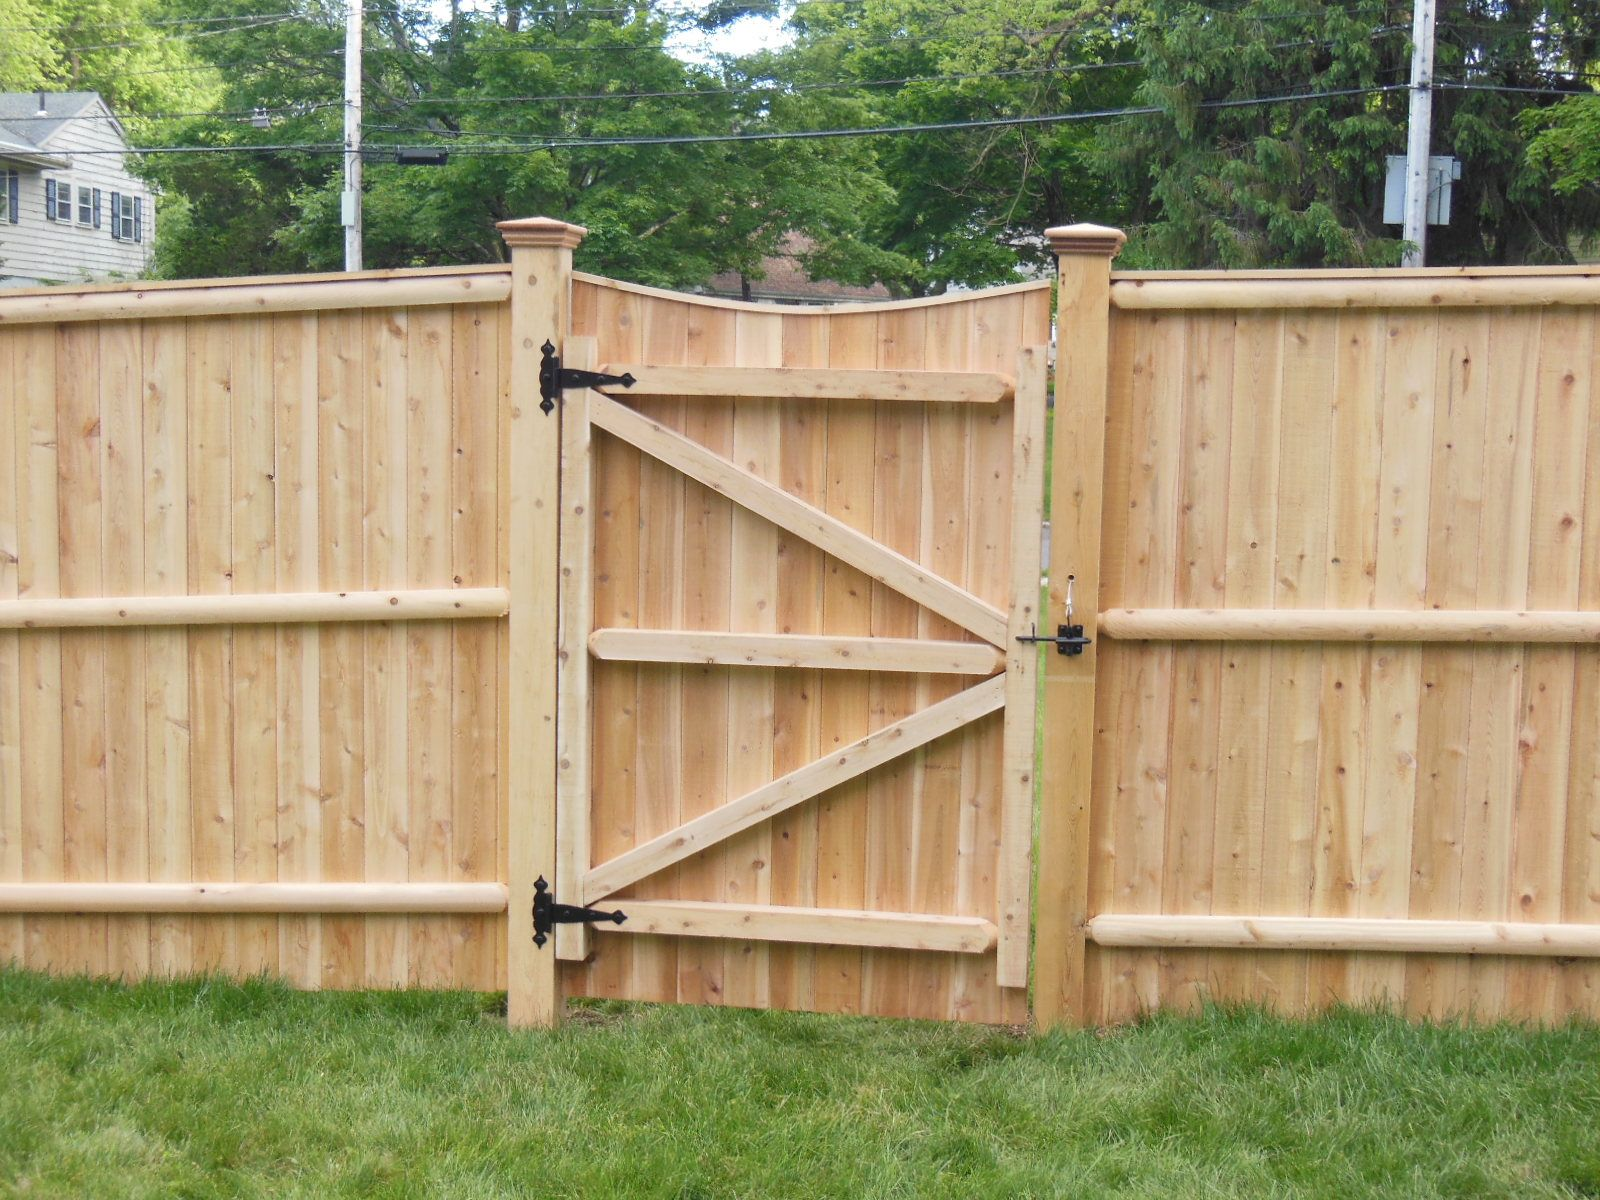 Fence Gate Designs Cedar Lattice With Gate Fences: wood garden fence designs